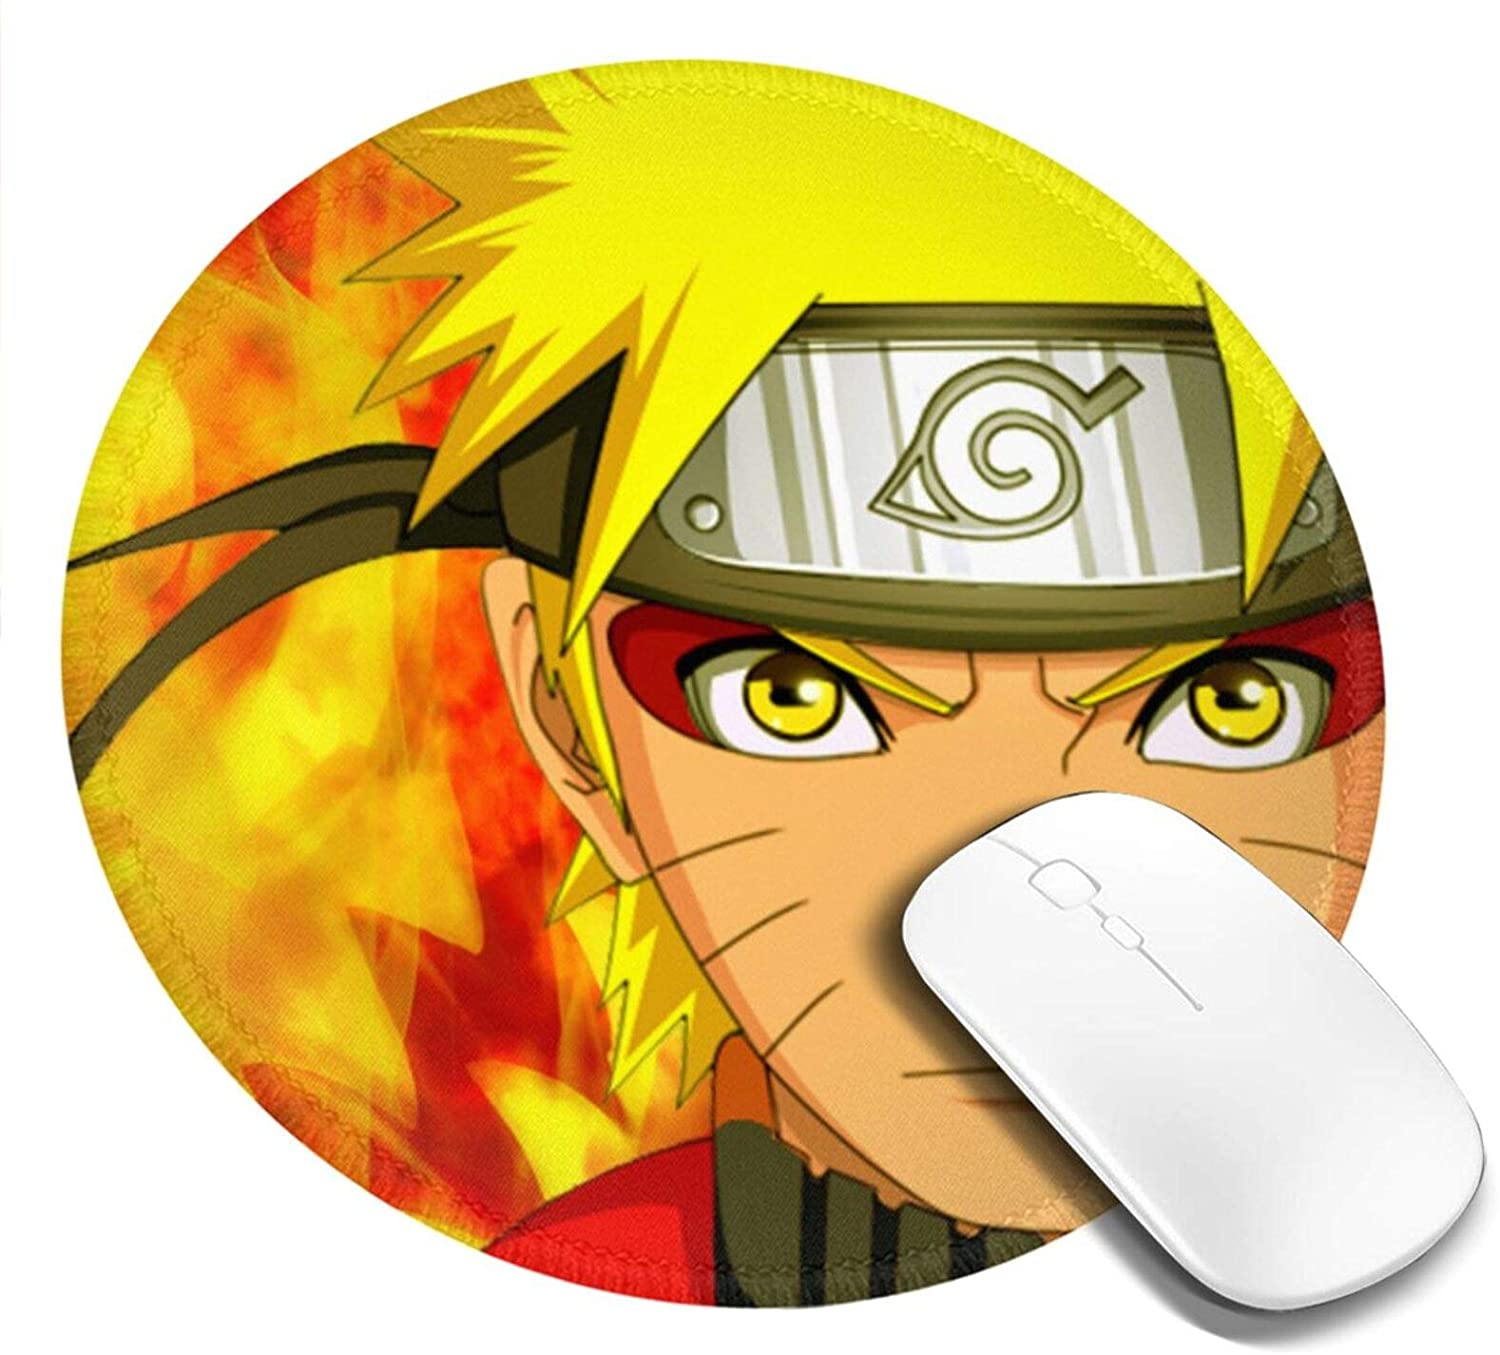 Naruto Round Gaming Mouse Pad with Stitched Edge, Non-Slip Rubber Base Mousepad for Home & Office Computer, Laptop 7.9x7.9 Inches